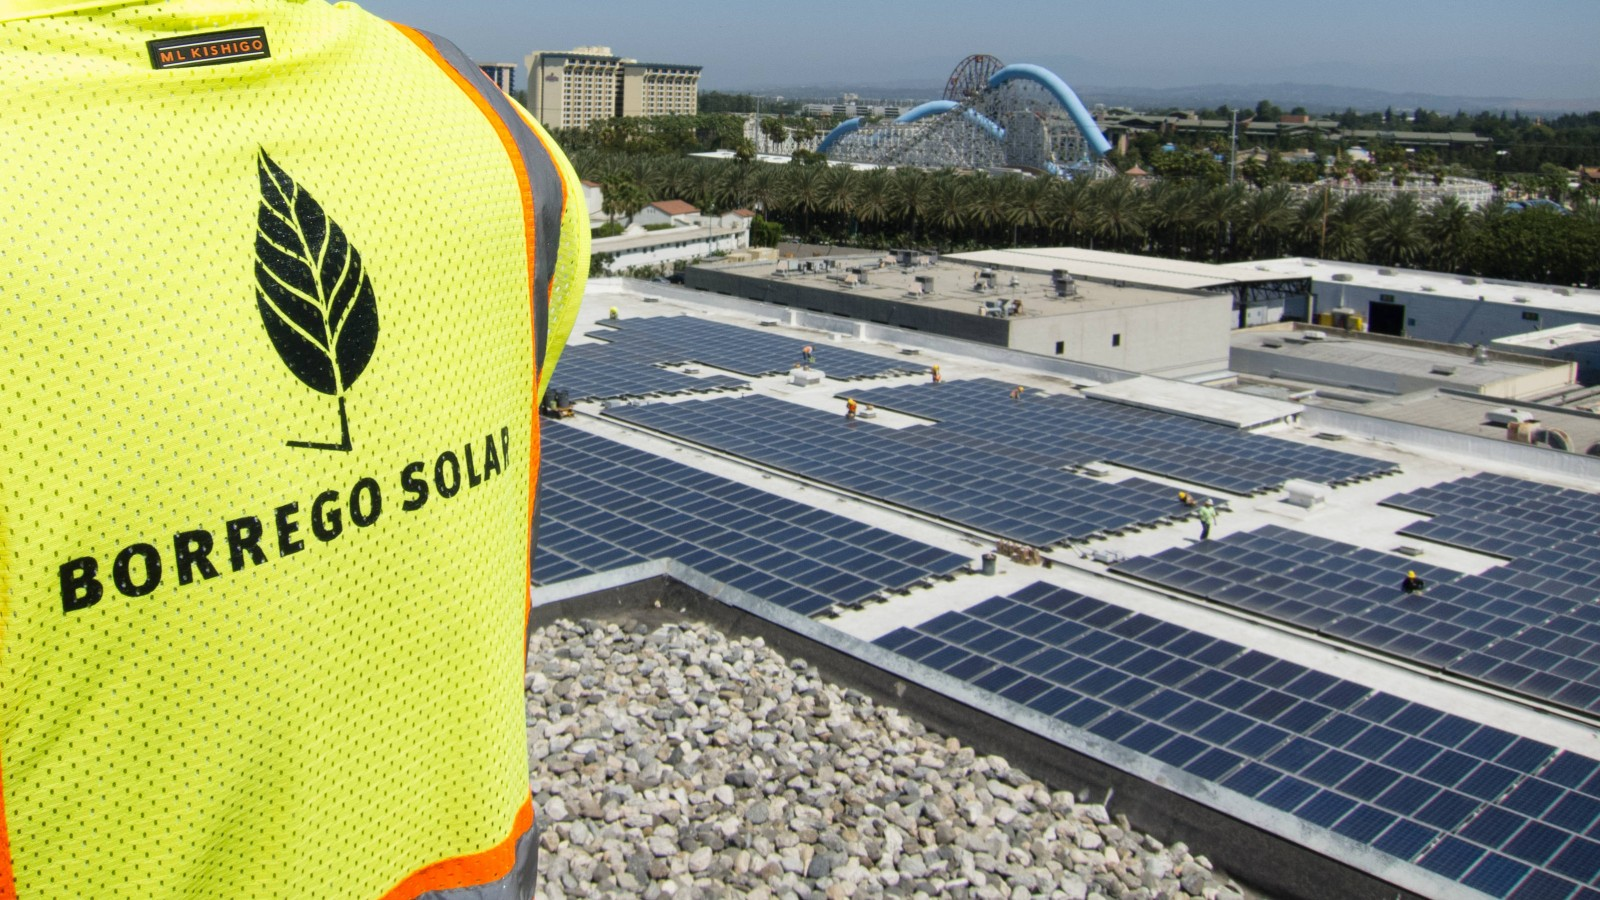 Borrego Expands Solar Operations and Maintenance Services to Non-EPC Customers